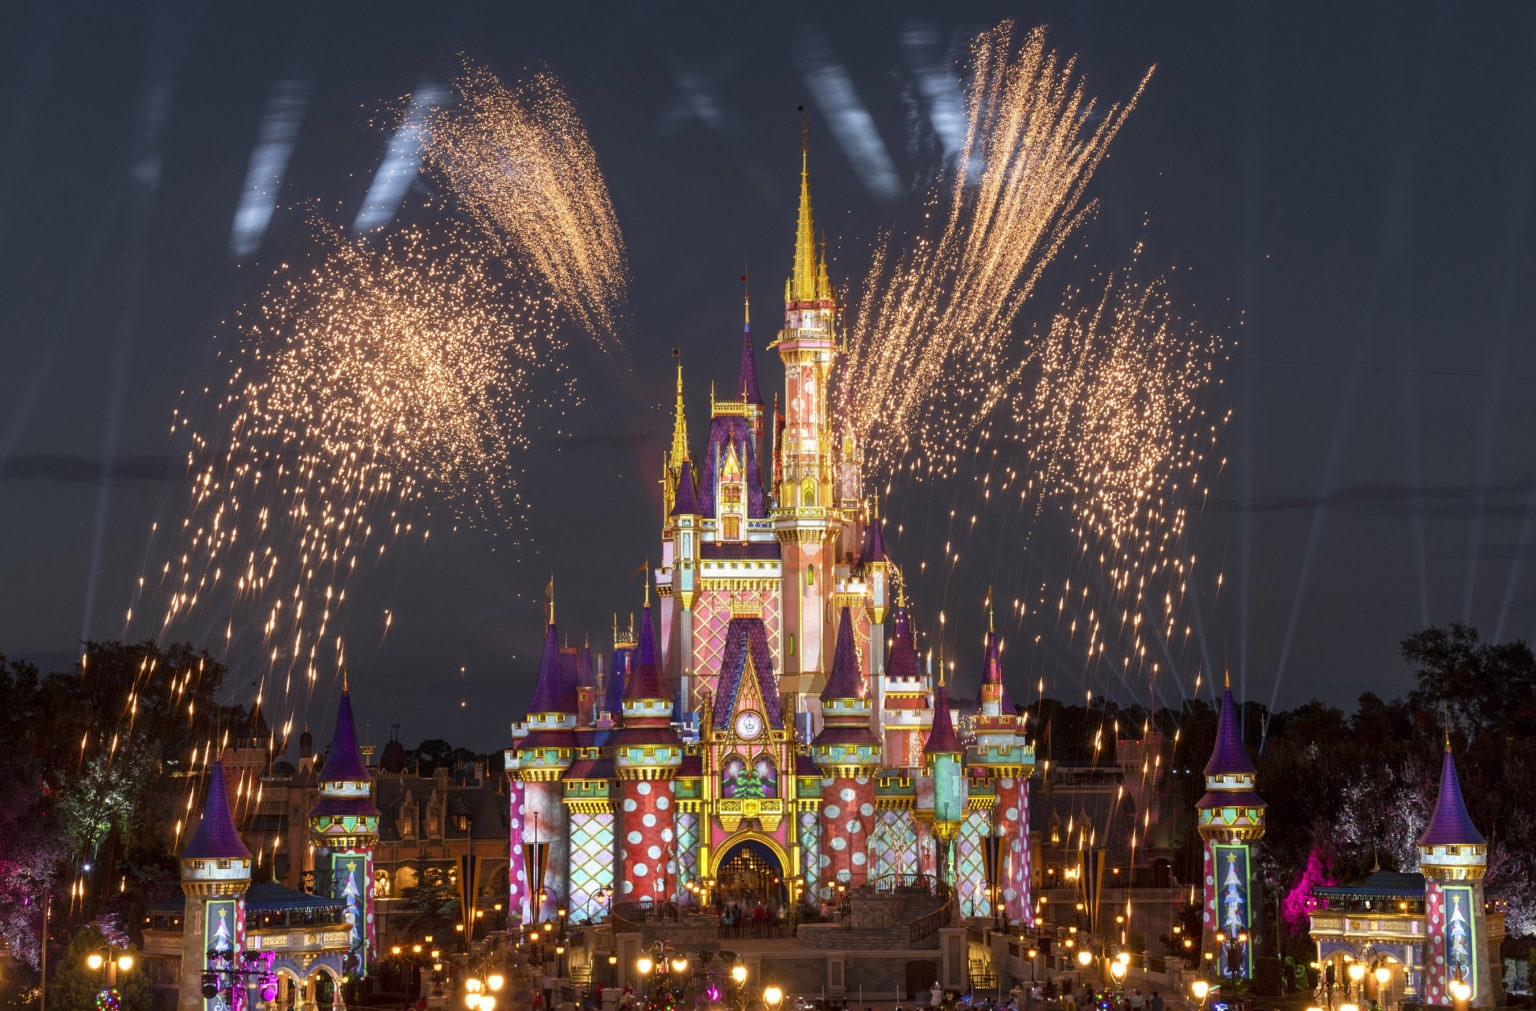 Pyrotechnic Pixie Dust Adds Holiday Cheer to Cinderella Castle